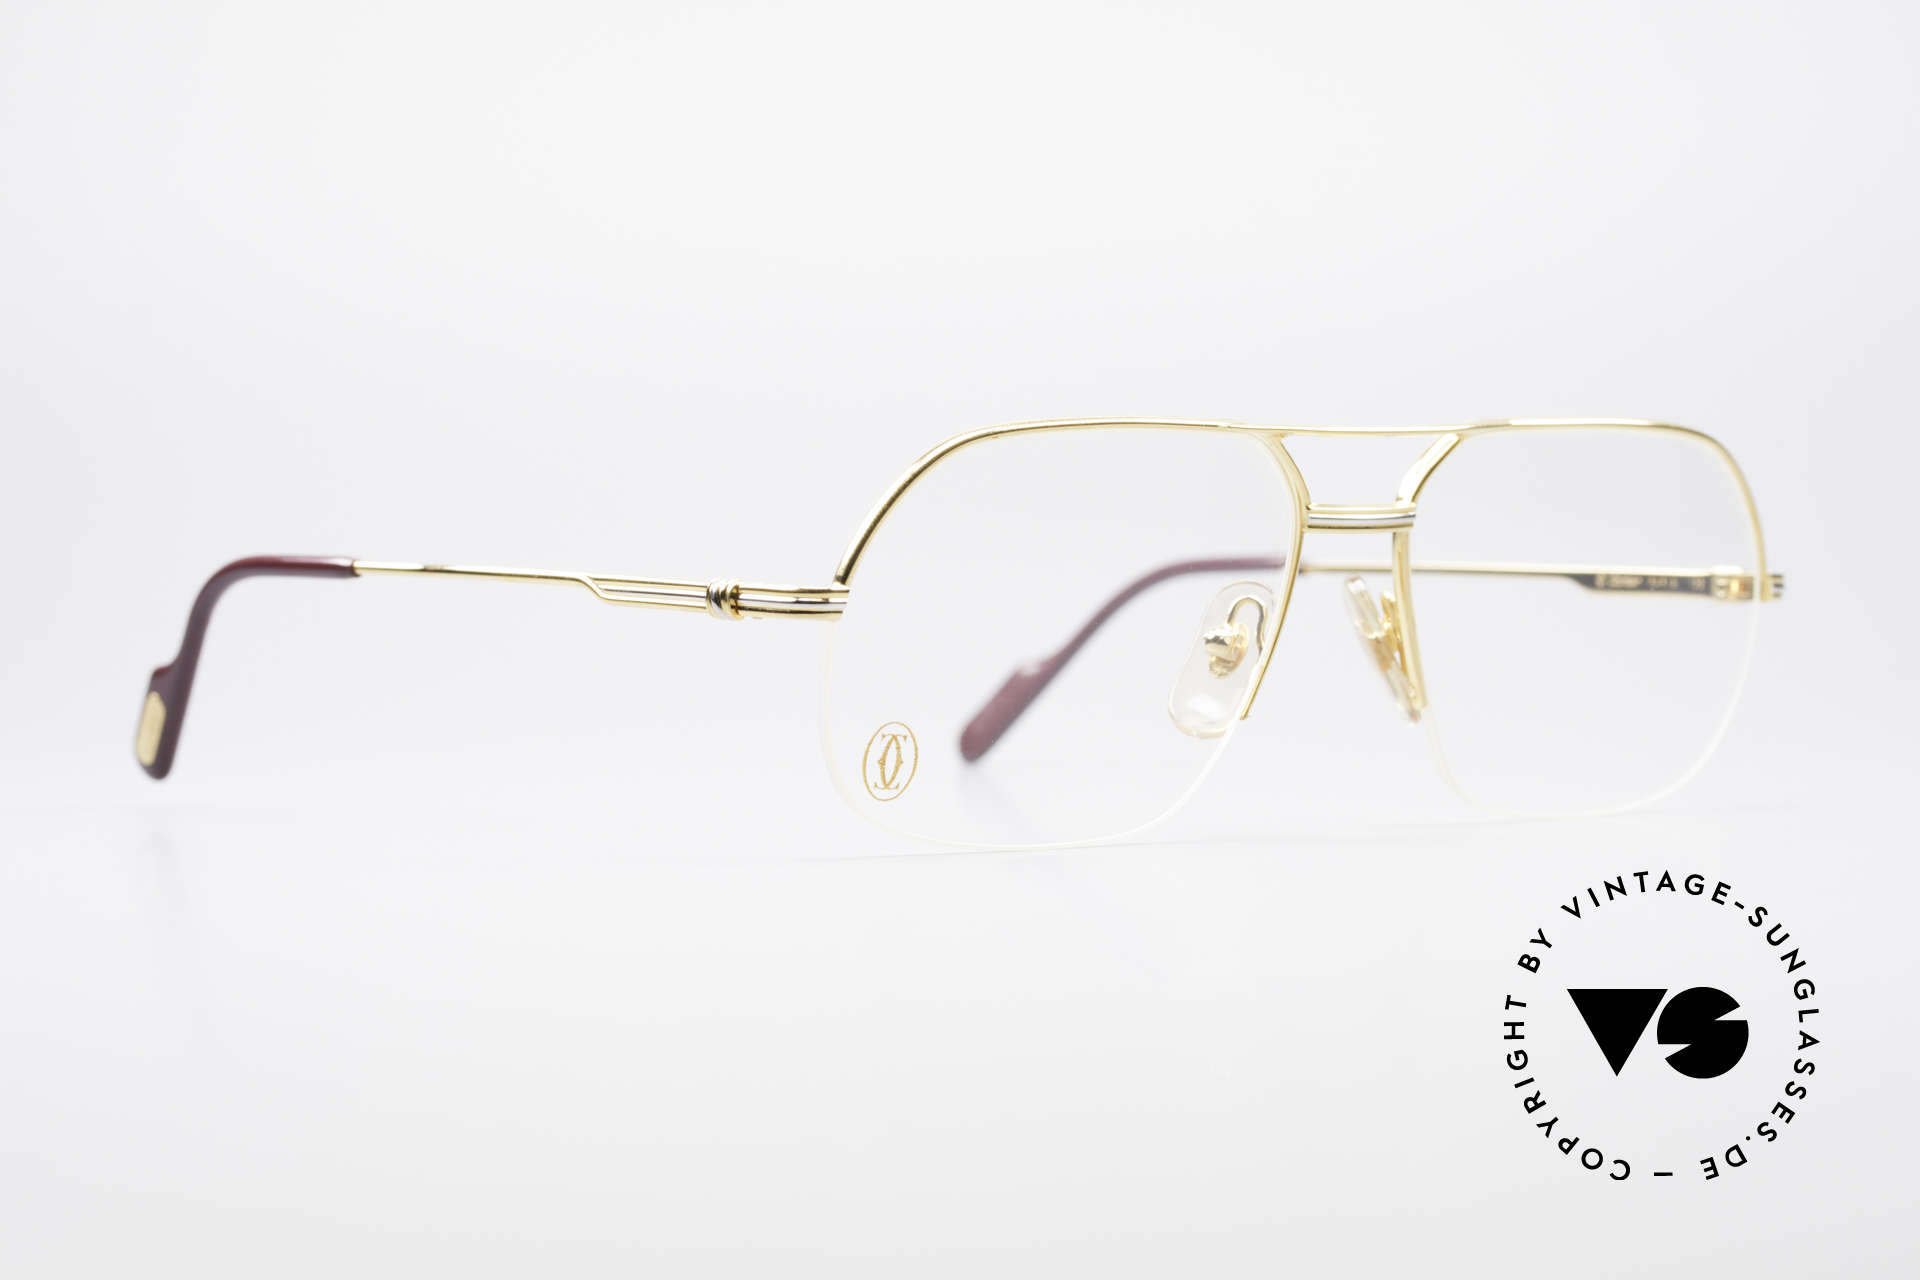 Cartier Orsay Luxury Vintage Eyeglasses, luxury Cartier half-frame, -lightweight and flexible, Made for Men